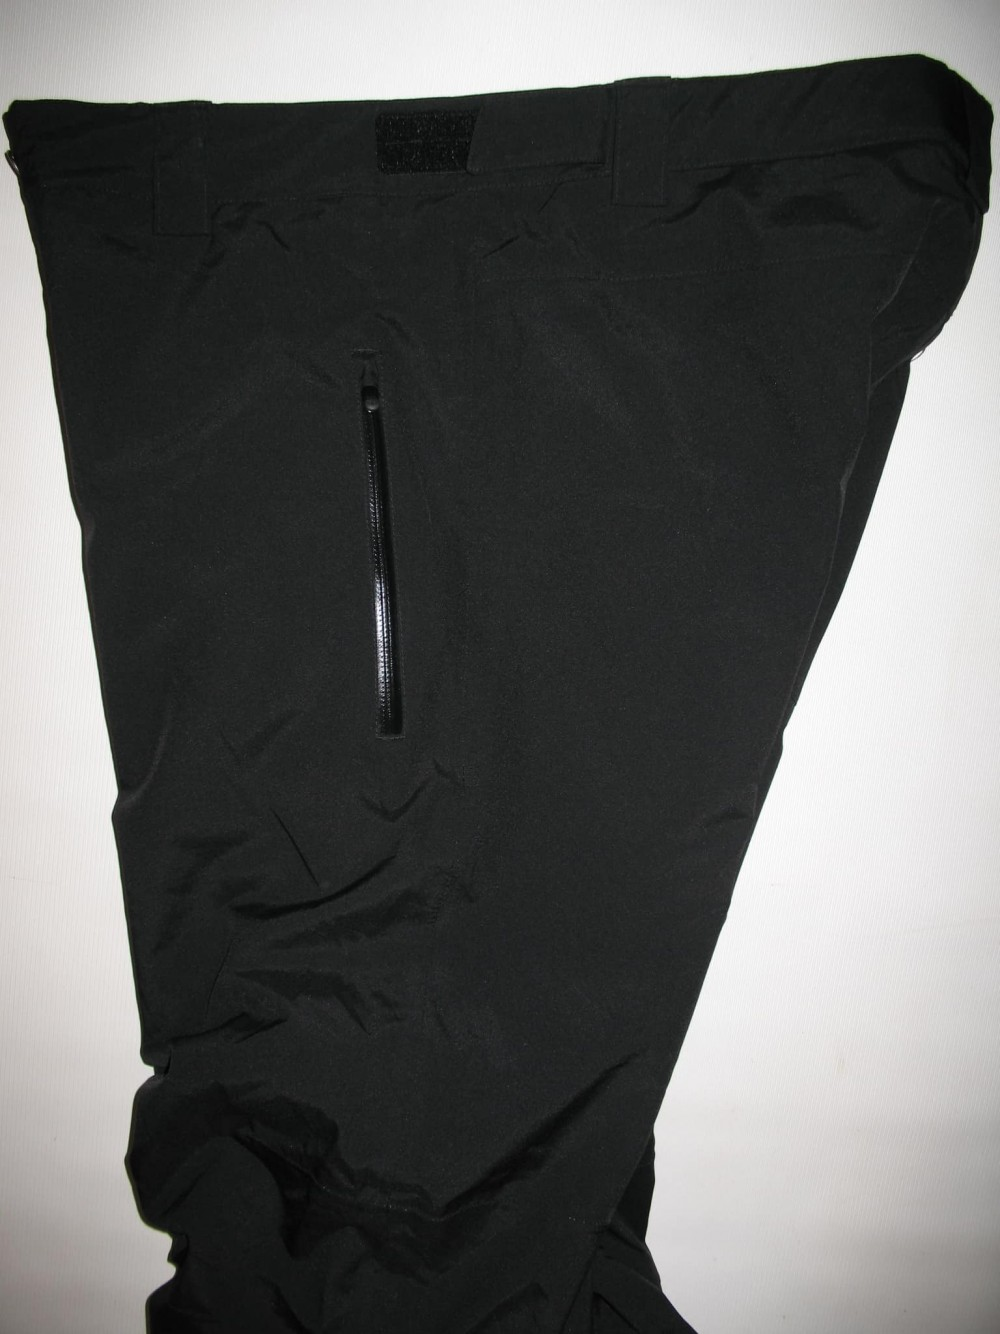 Штаны HELLY HANSEN Legendary Pant (размер L) - 11